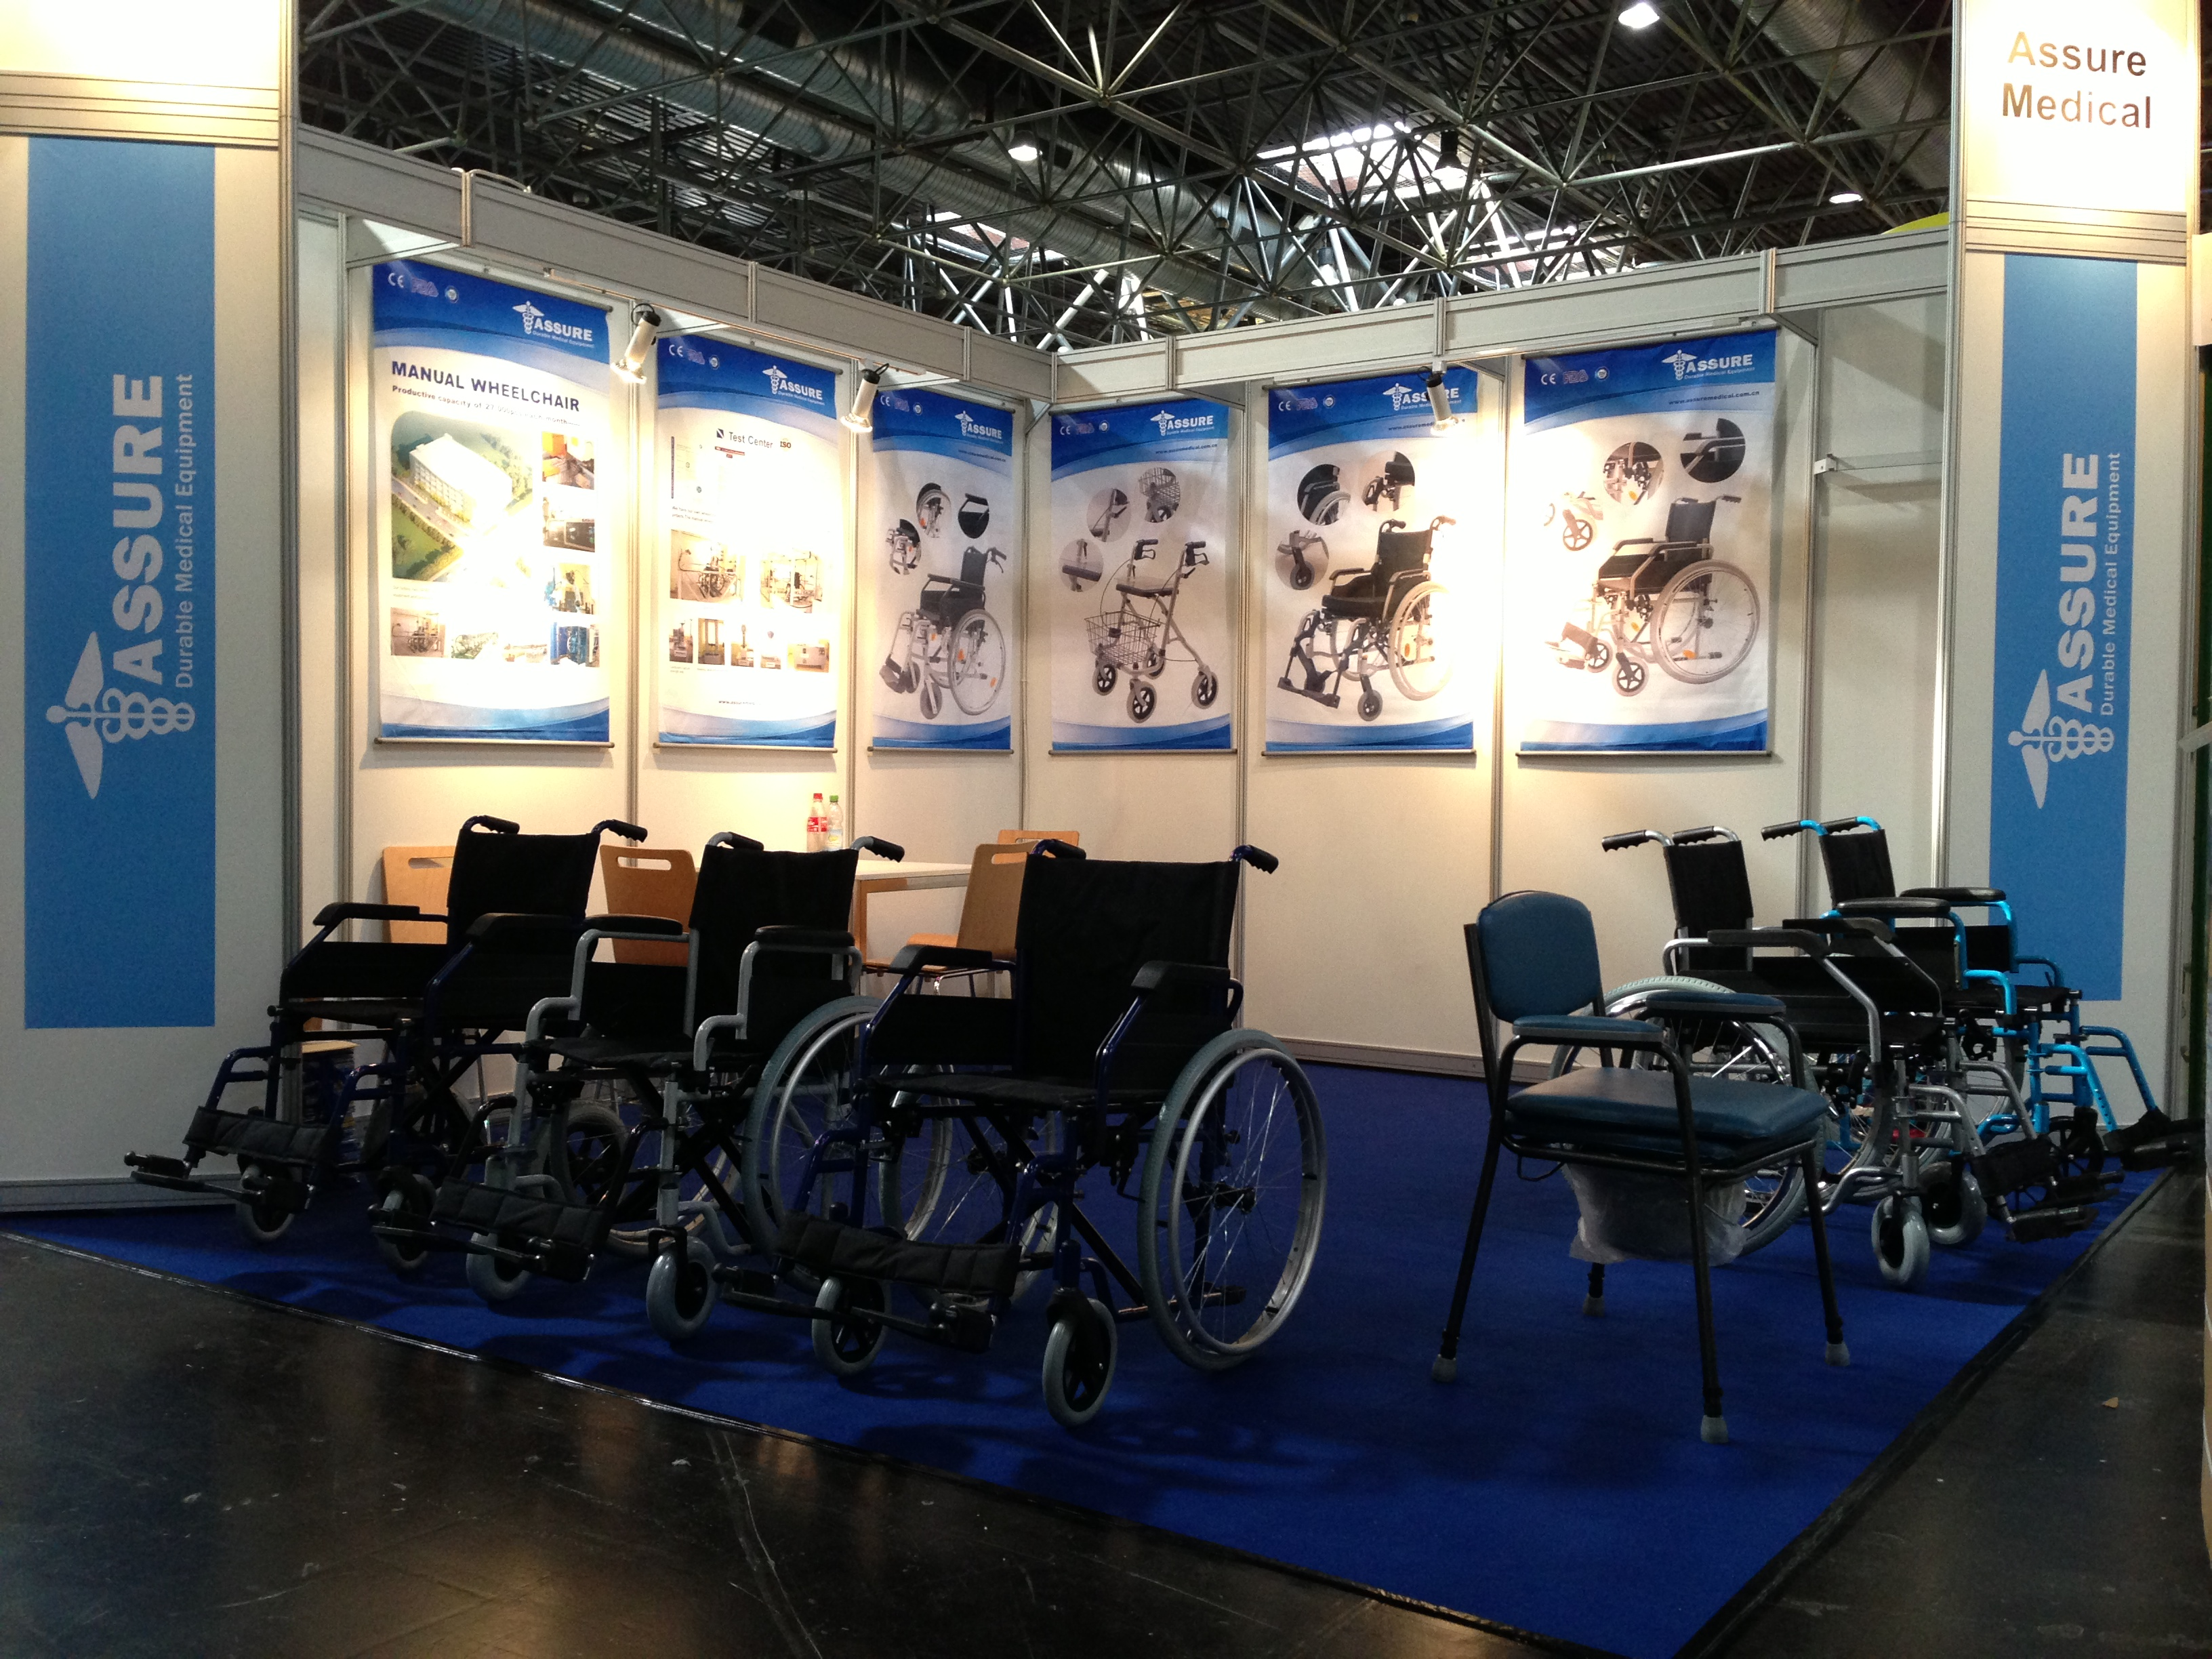 2013 Rehacare 25˜28 Sep